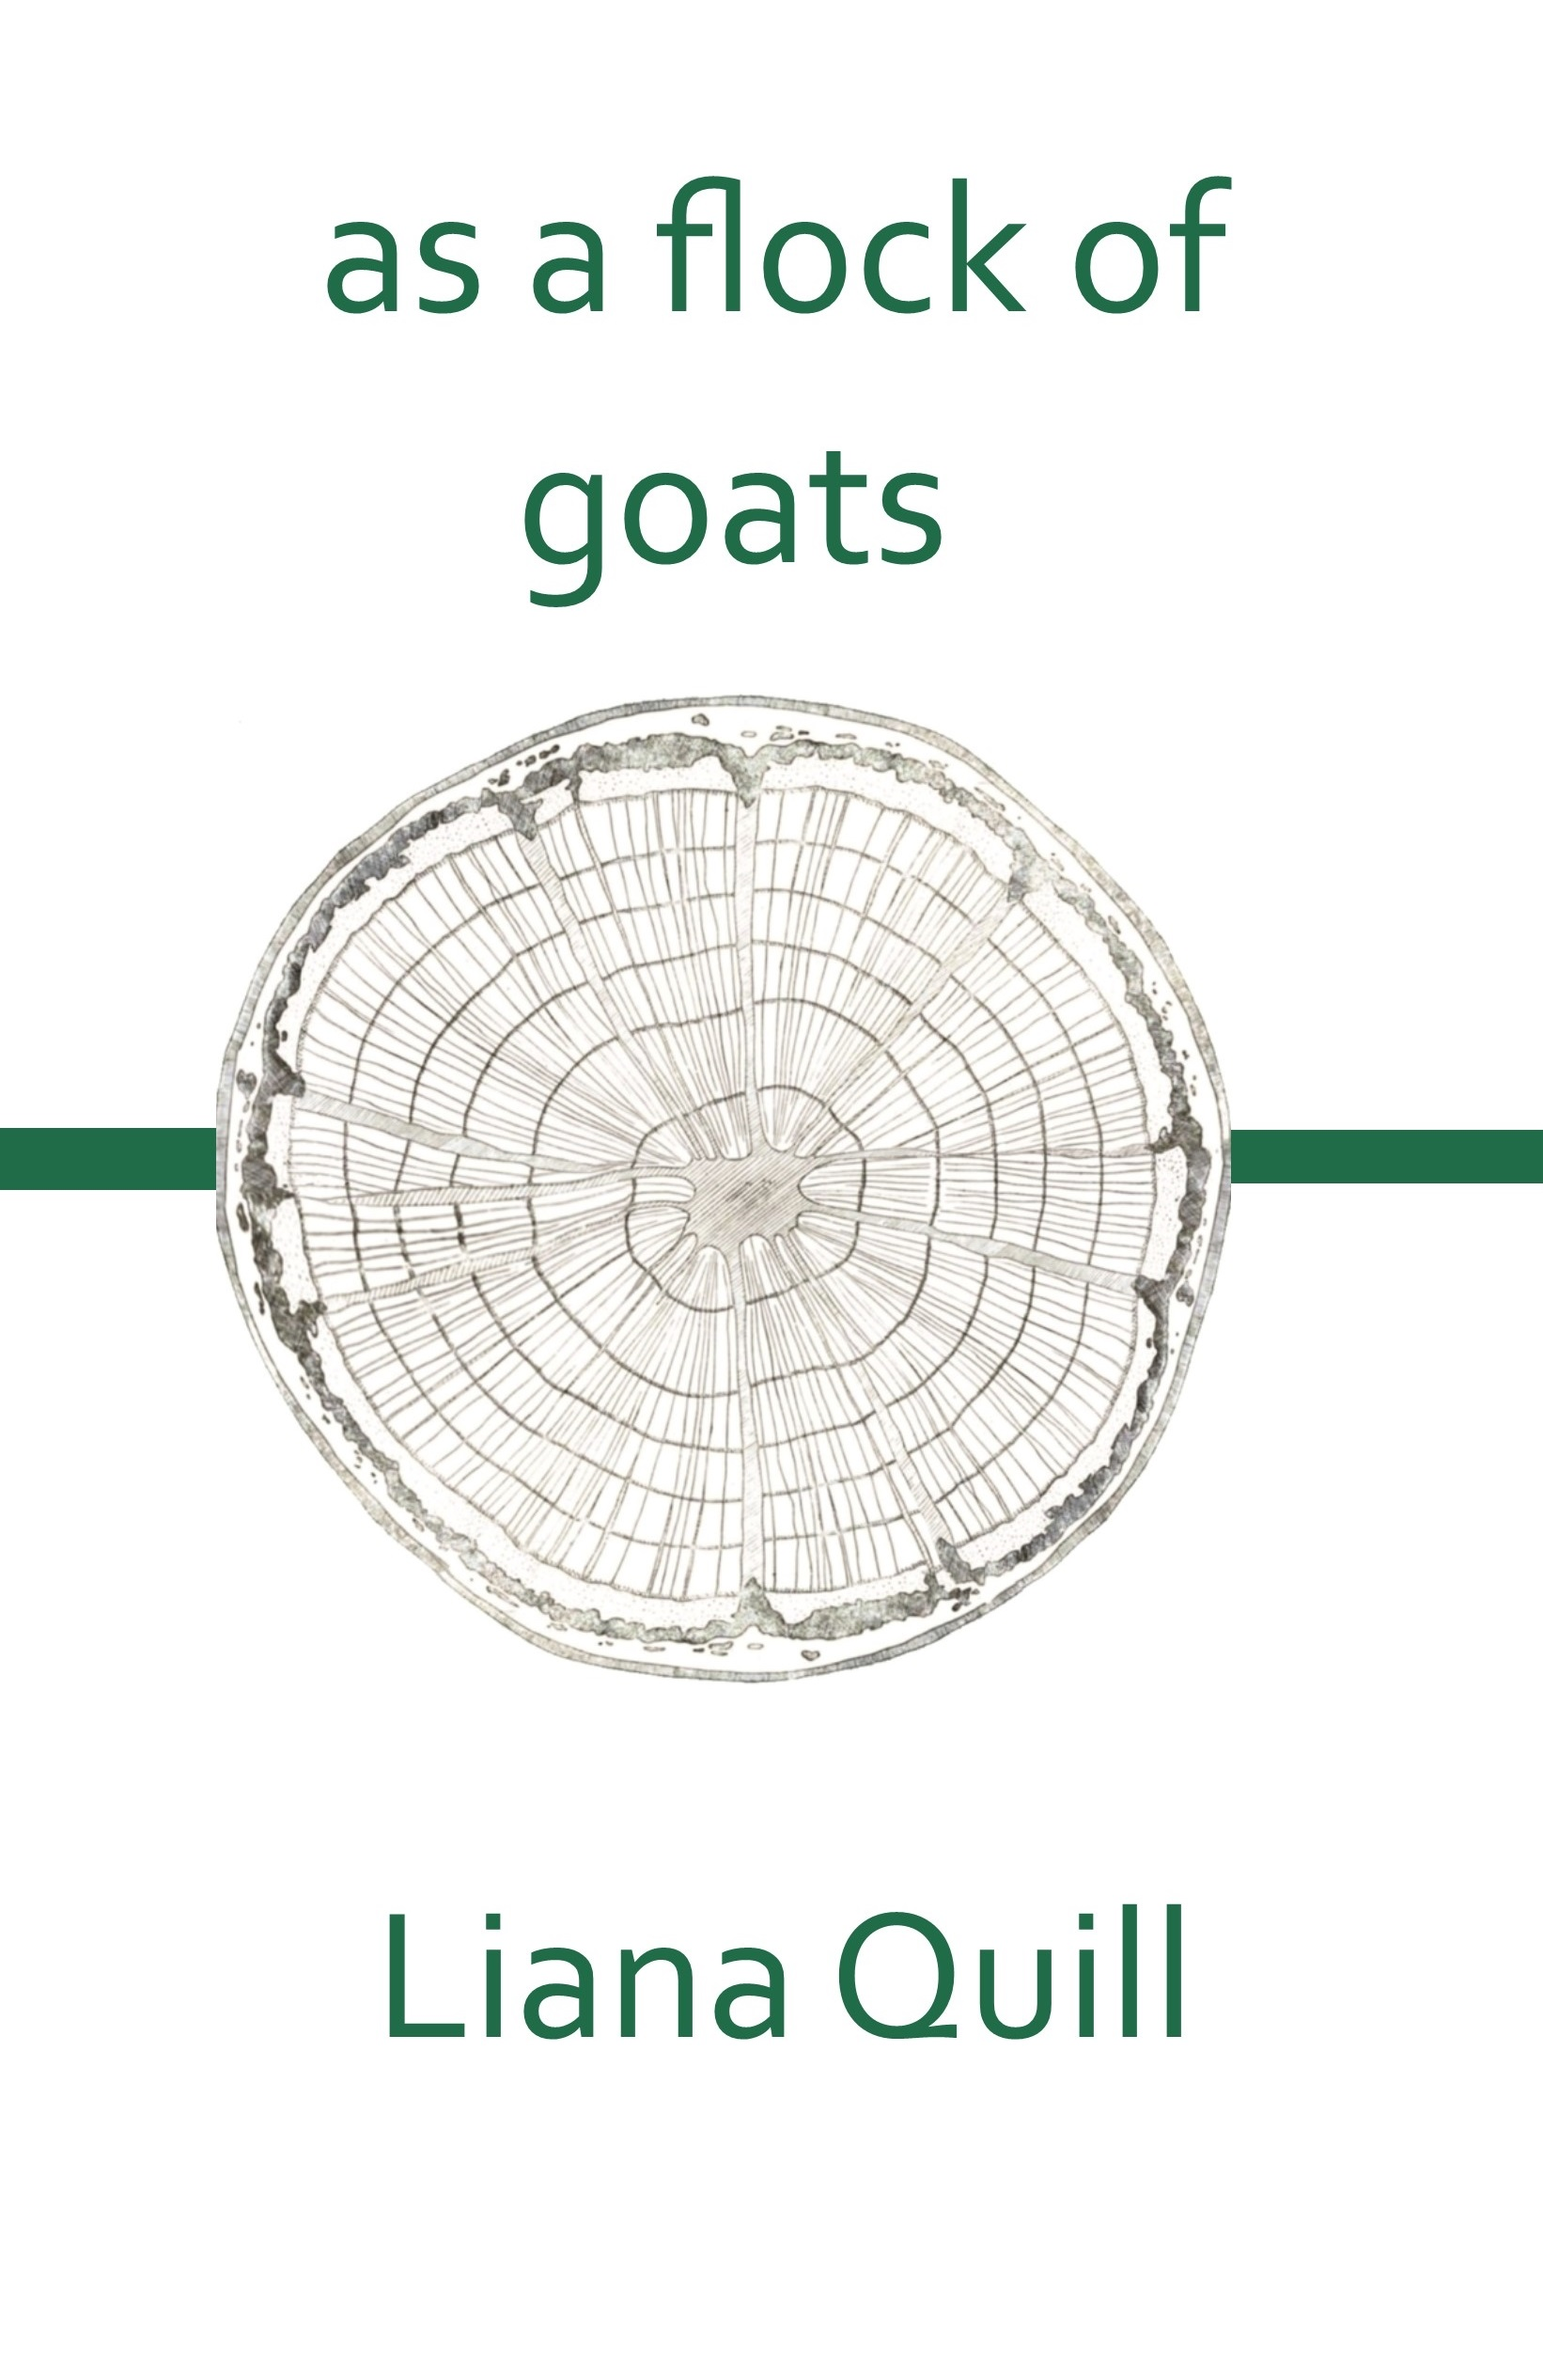 as a flock of goats